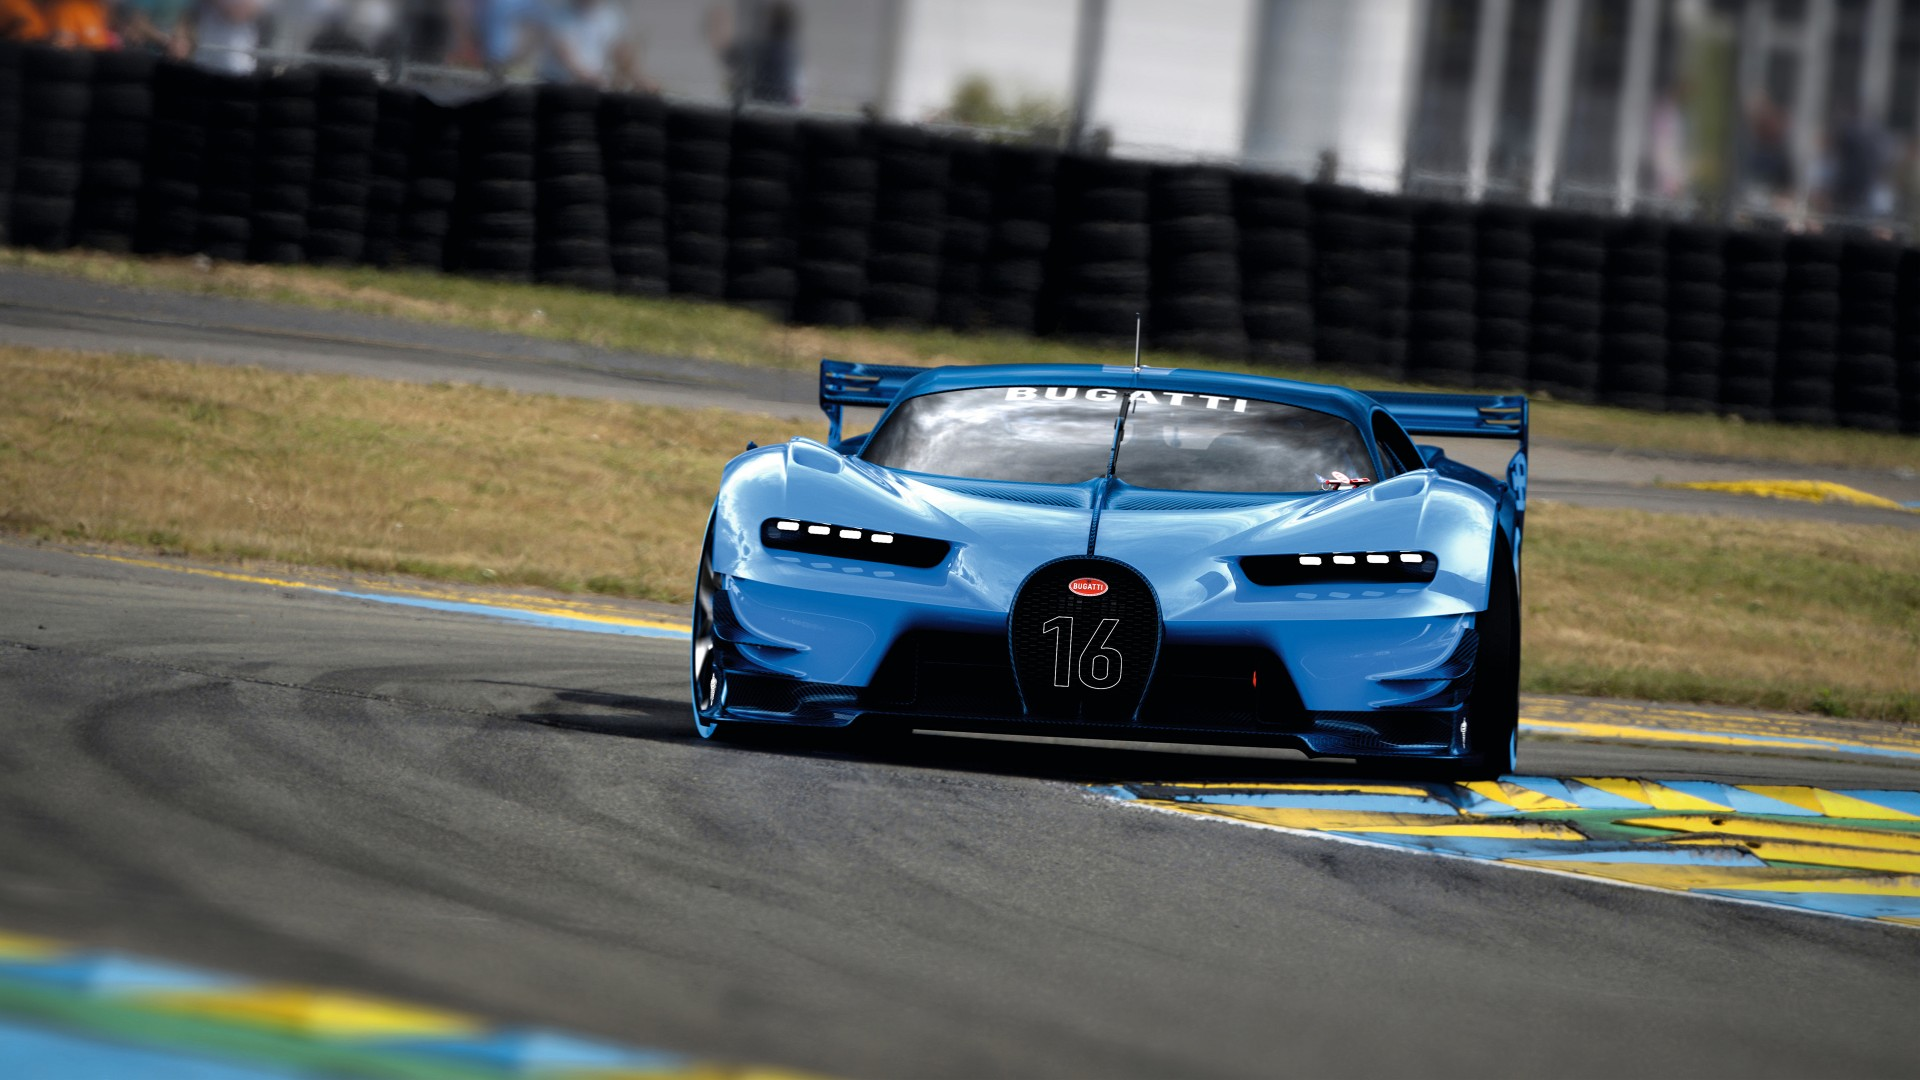 2015 Bugatti Vision Gran Turismo 9 Wallpaper  HD Car Wallpapers